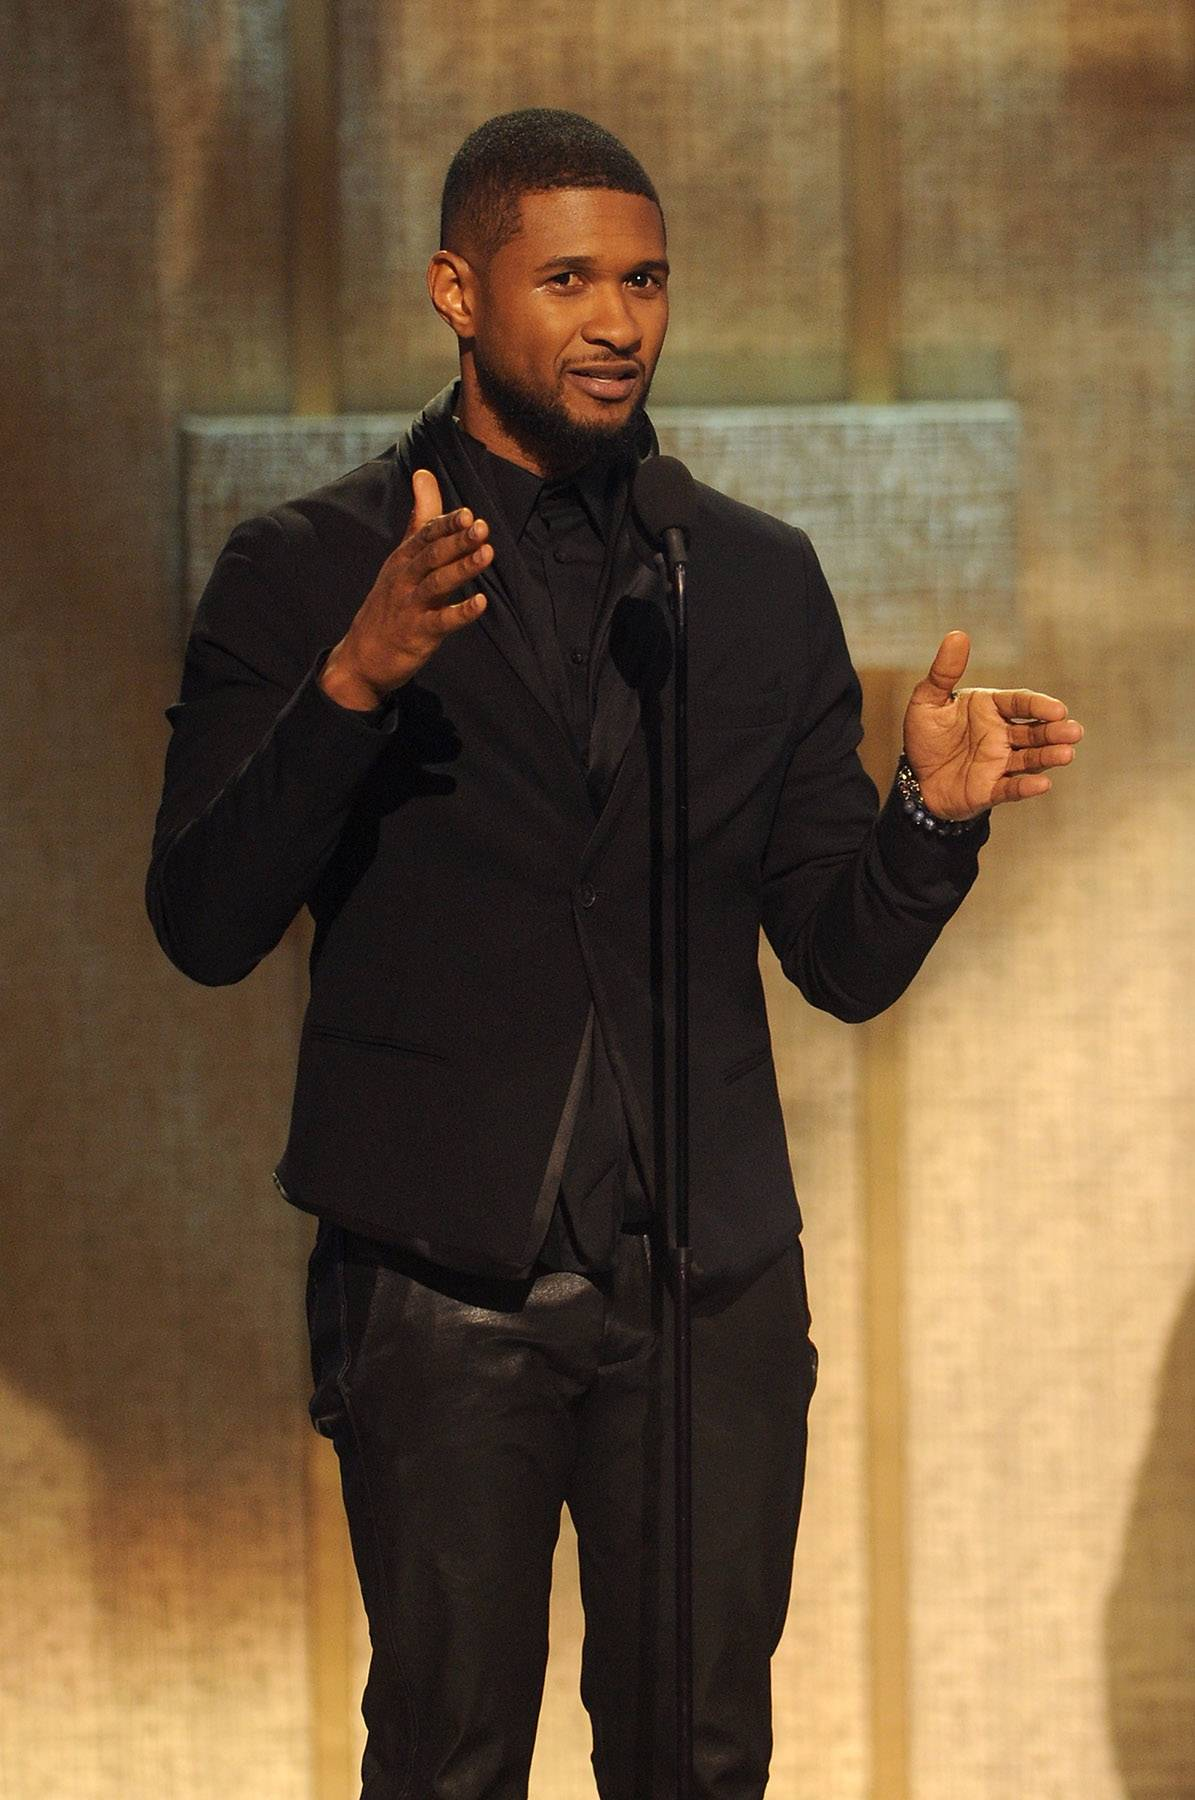 Honoring Others - The BET Honors Musical Arts honoreeUsheraccepts his award by saluting the rest of the BET Honors honorees.(Photo: Brad Barket/BET/Getty Images for BET)